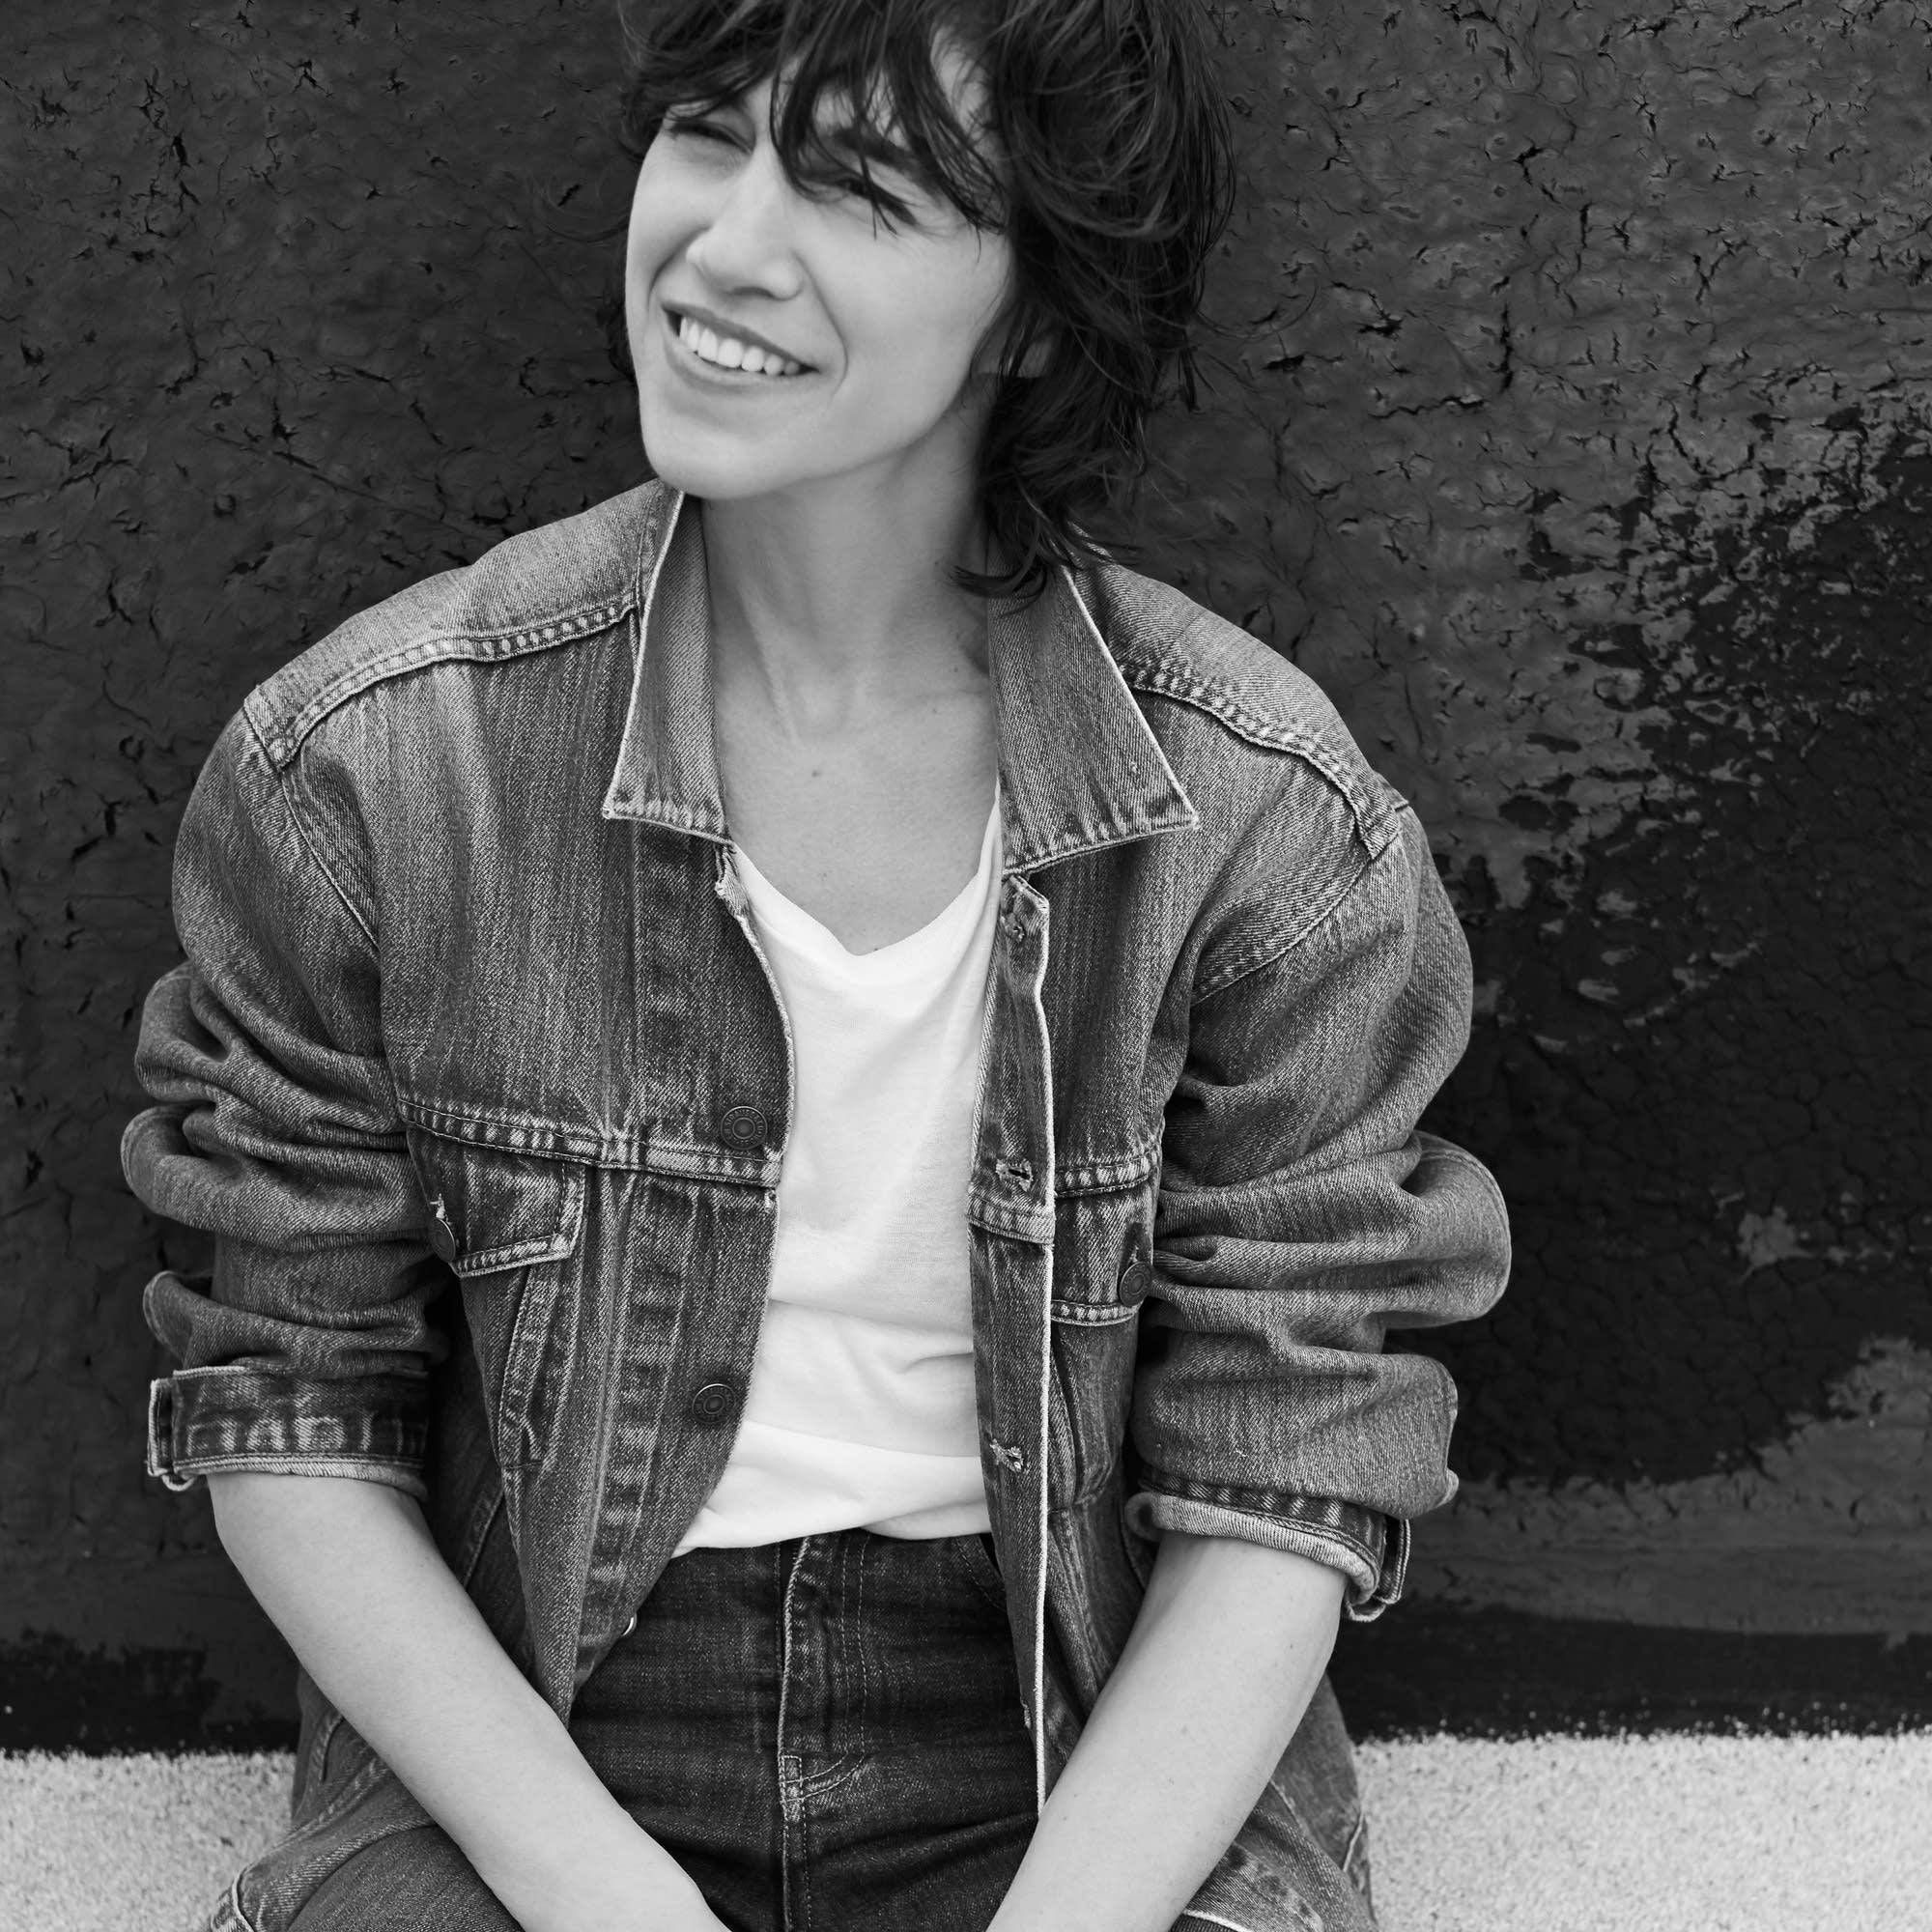 dj pick of the week charlotte gainsbourg 39 deadly valentine 39 the current. Black Bedroom Furniture Sets. Home Design Ideas